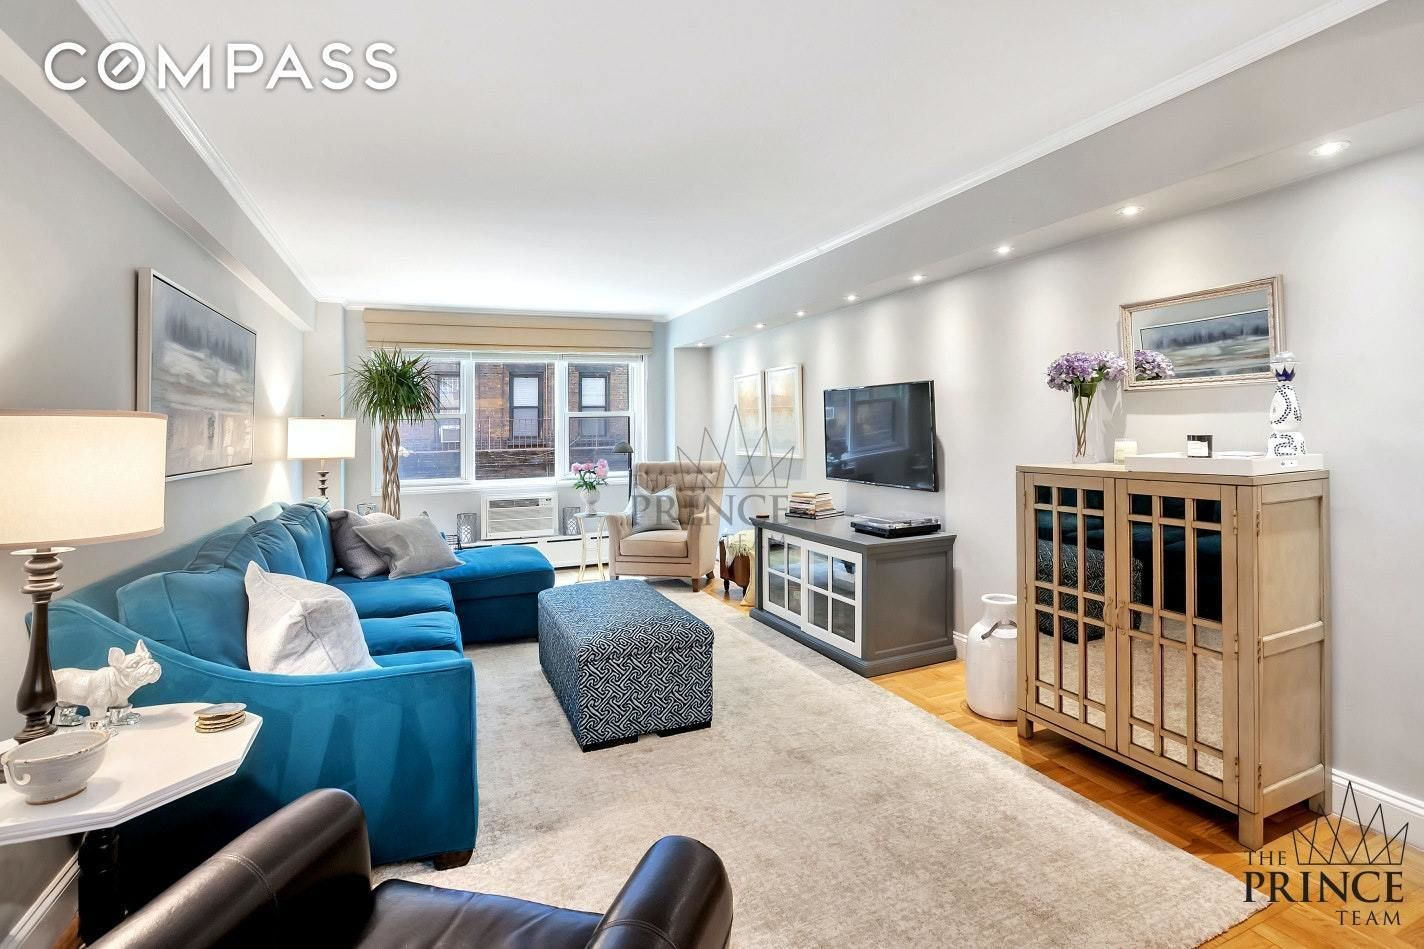 Apartment for sale at 315 East 69th Street, Apt 2-CD